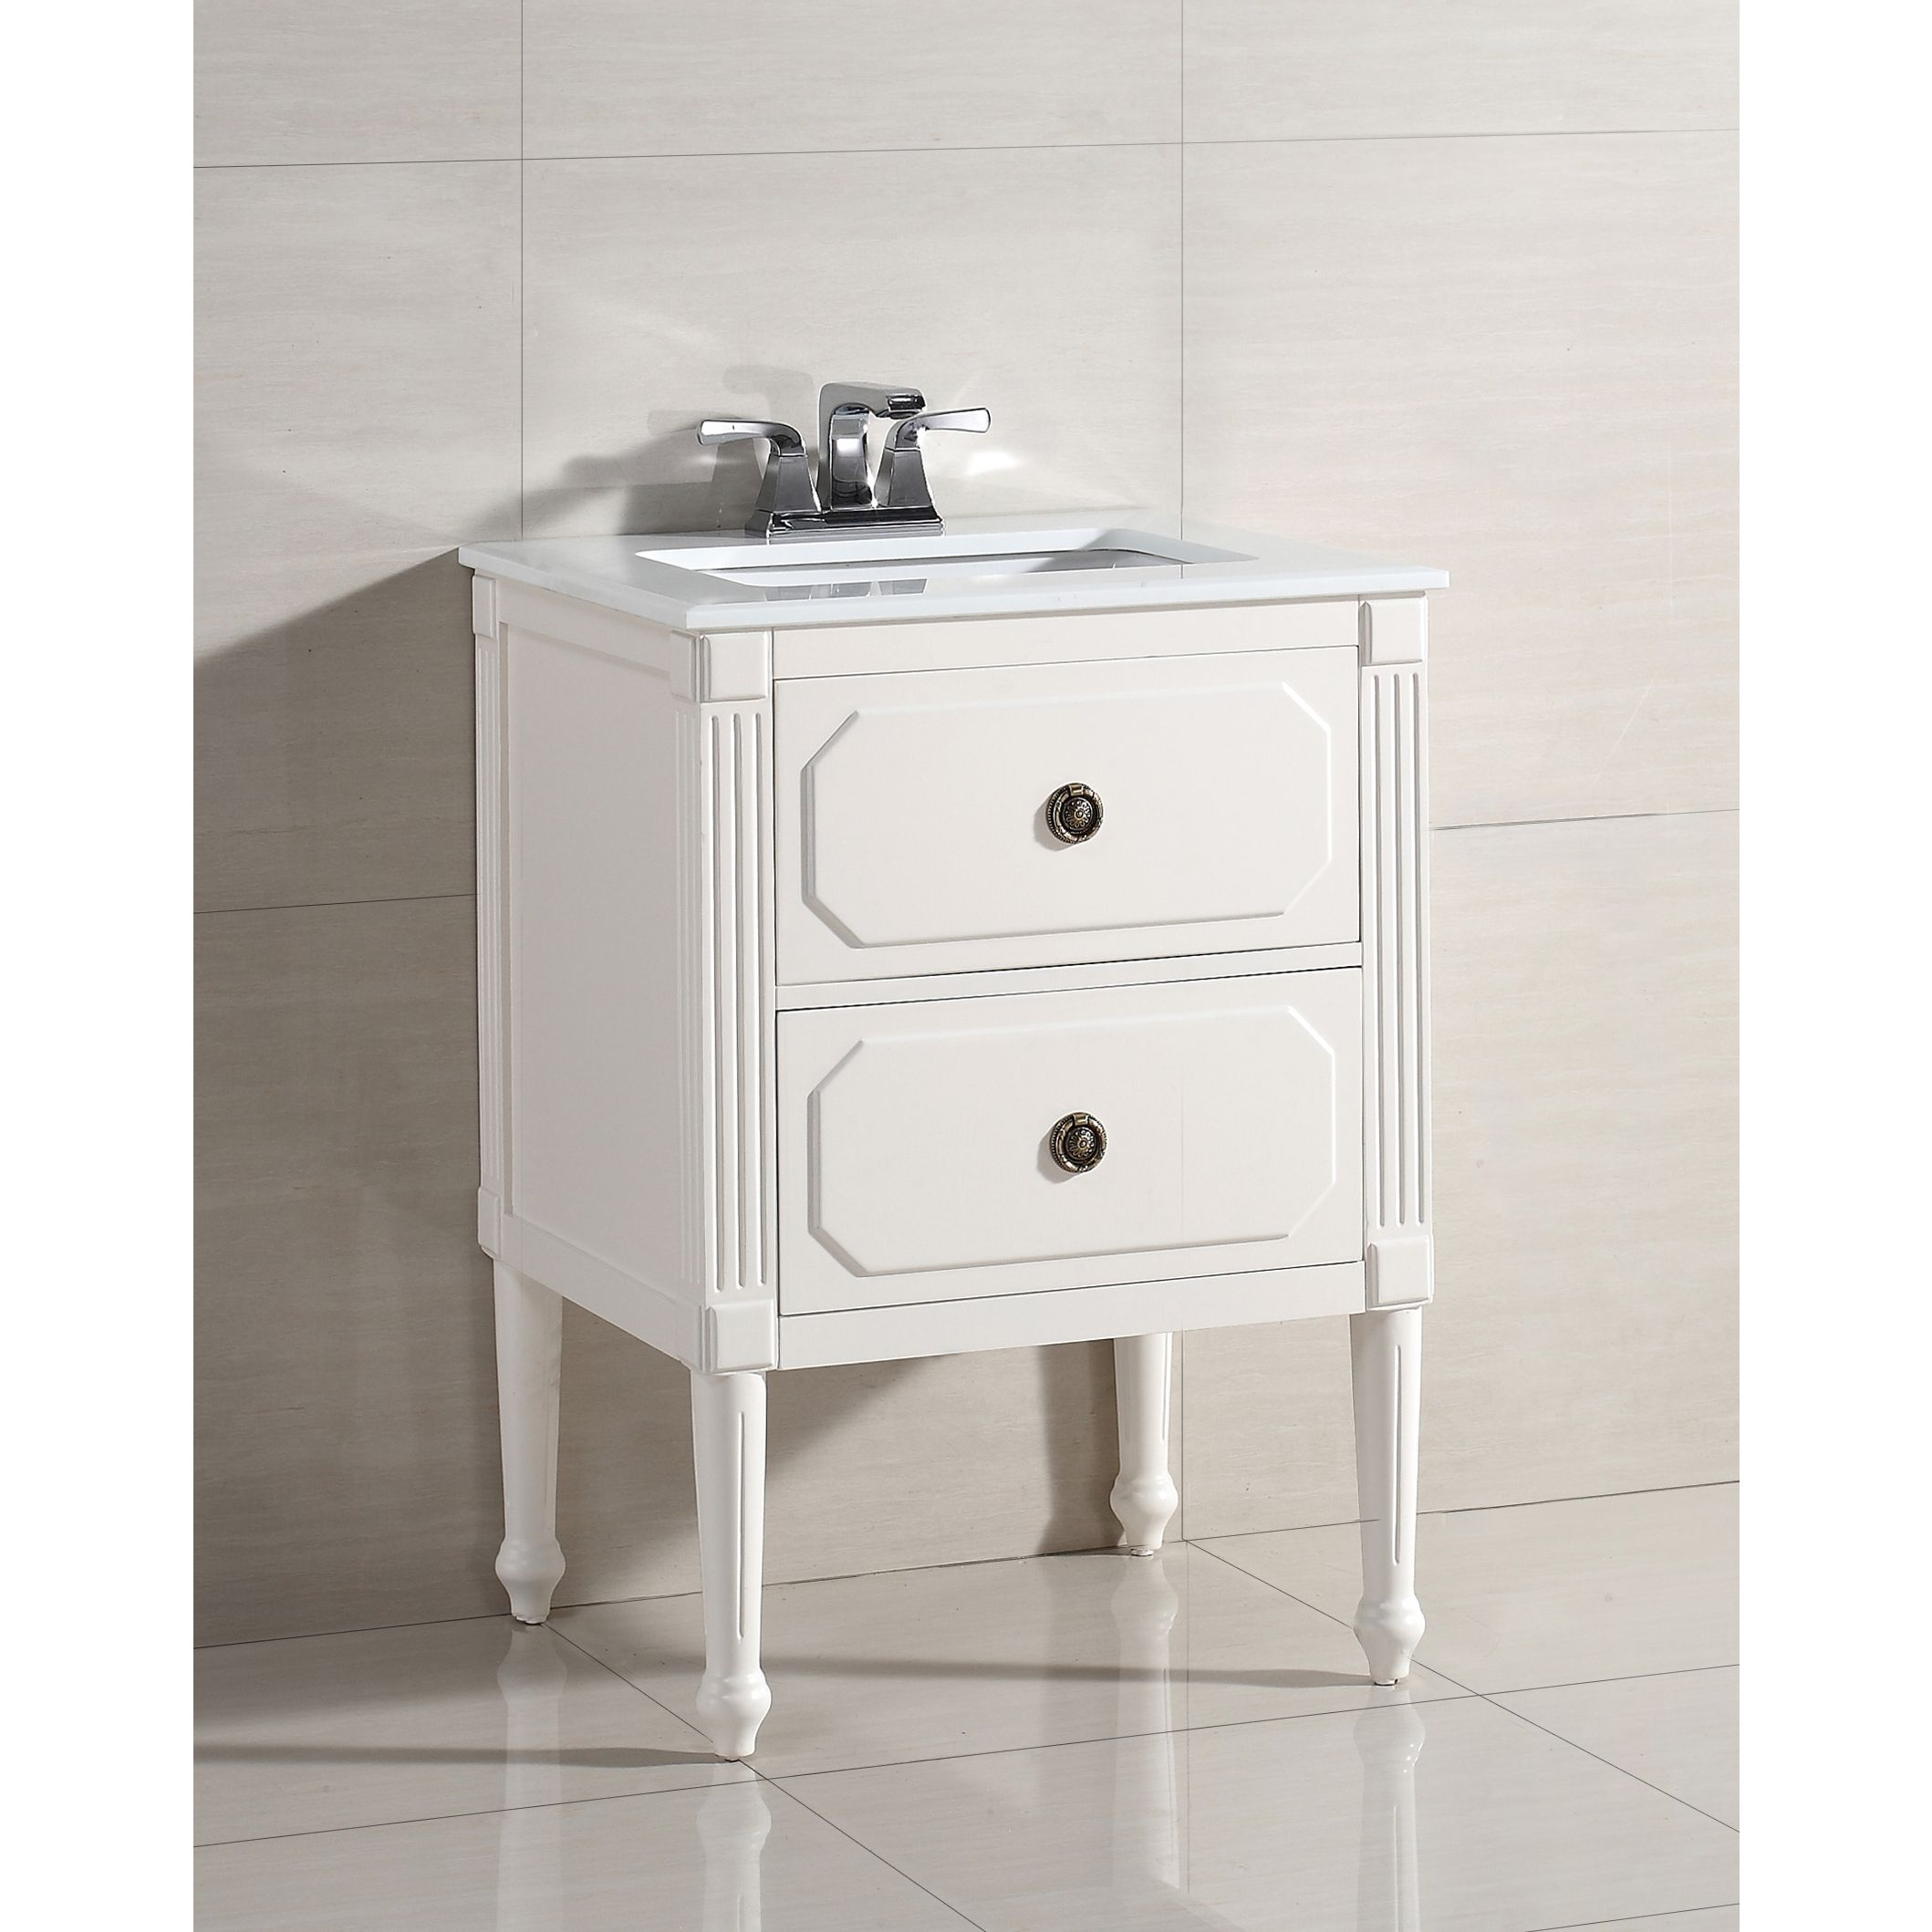 $583 The 24-inch Dubois Bath Vanity is a perfect size for ...